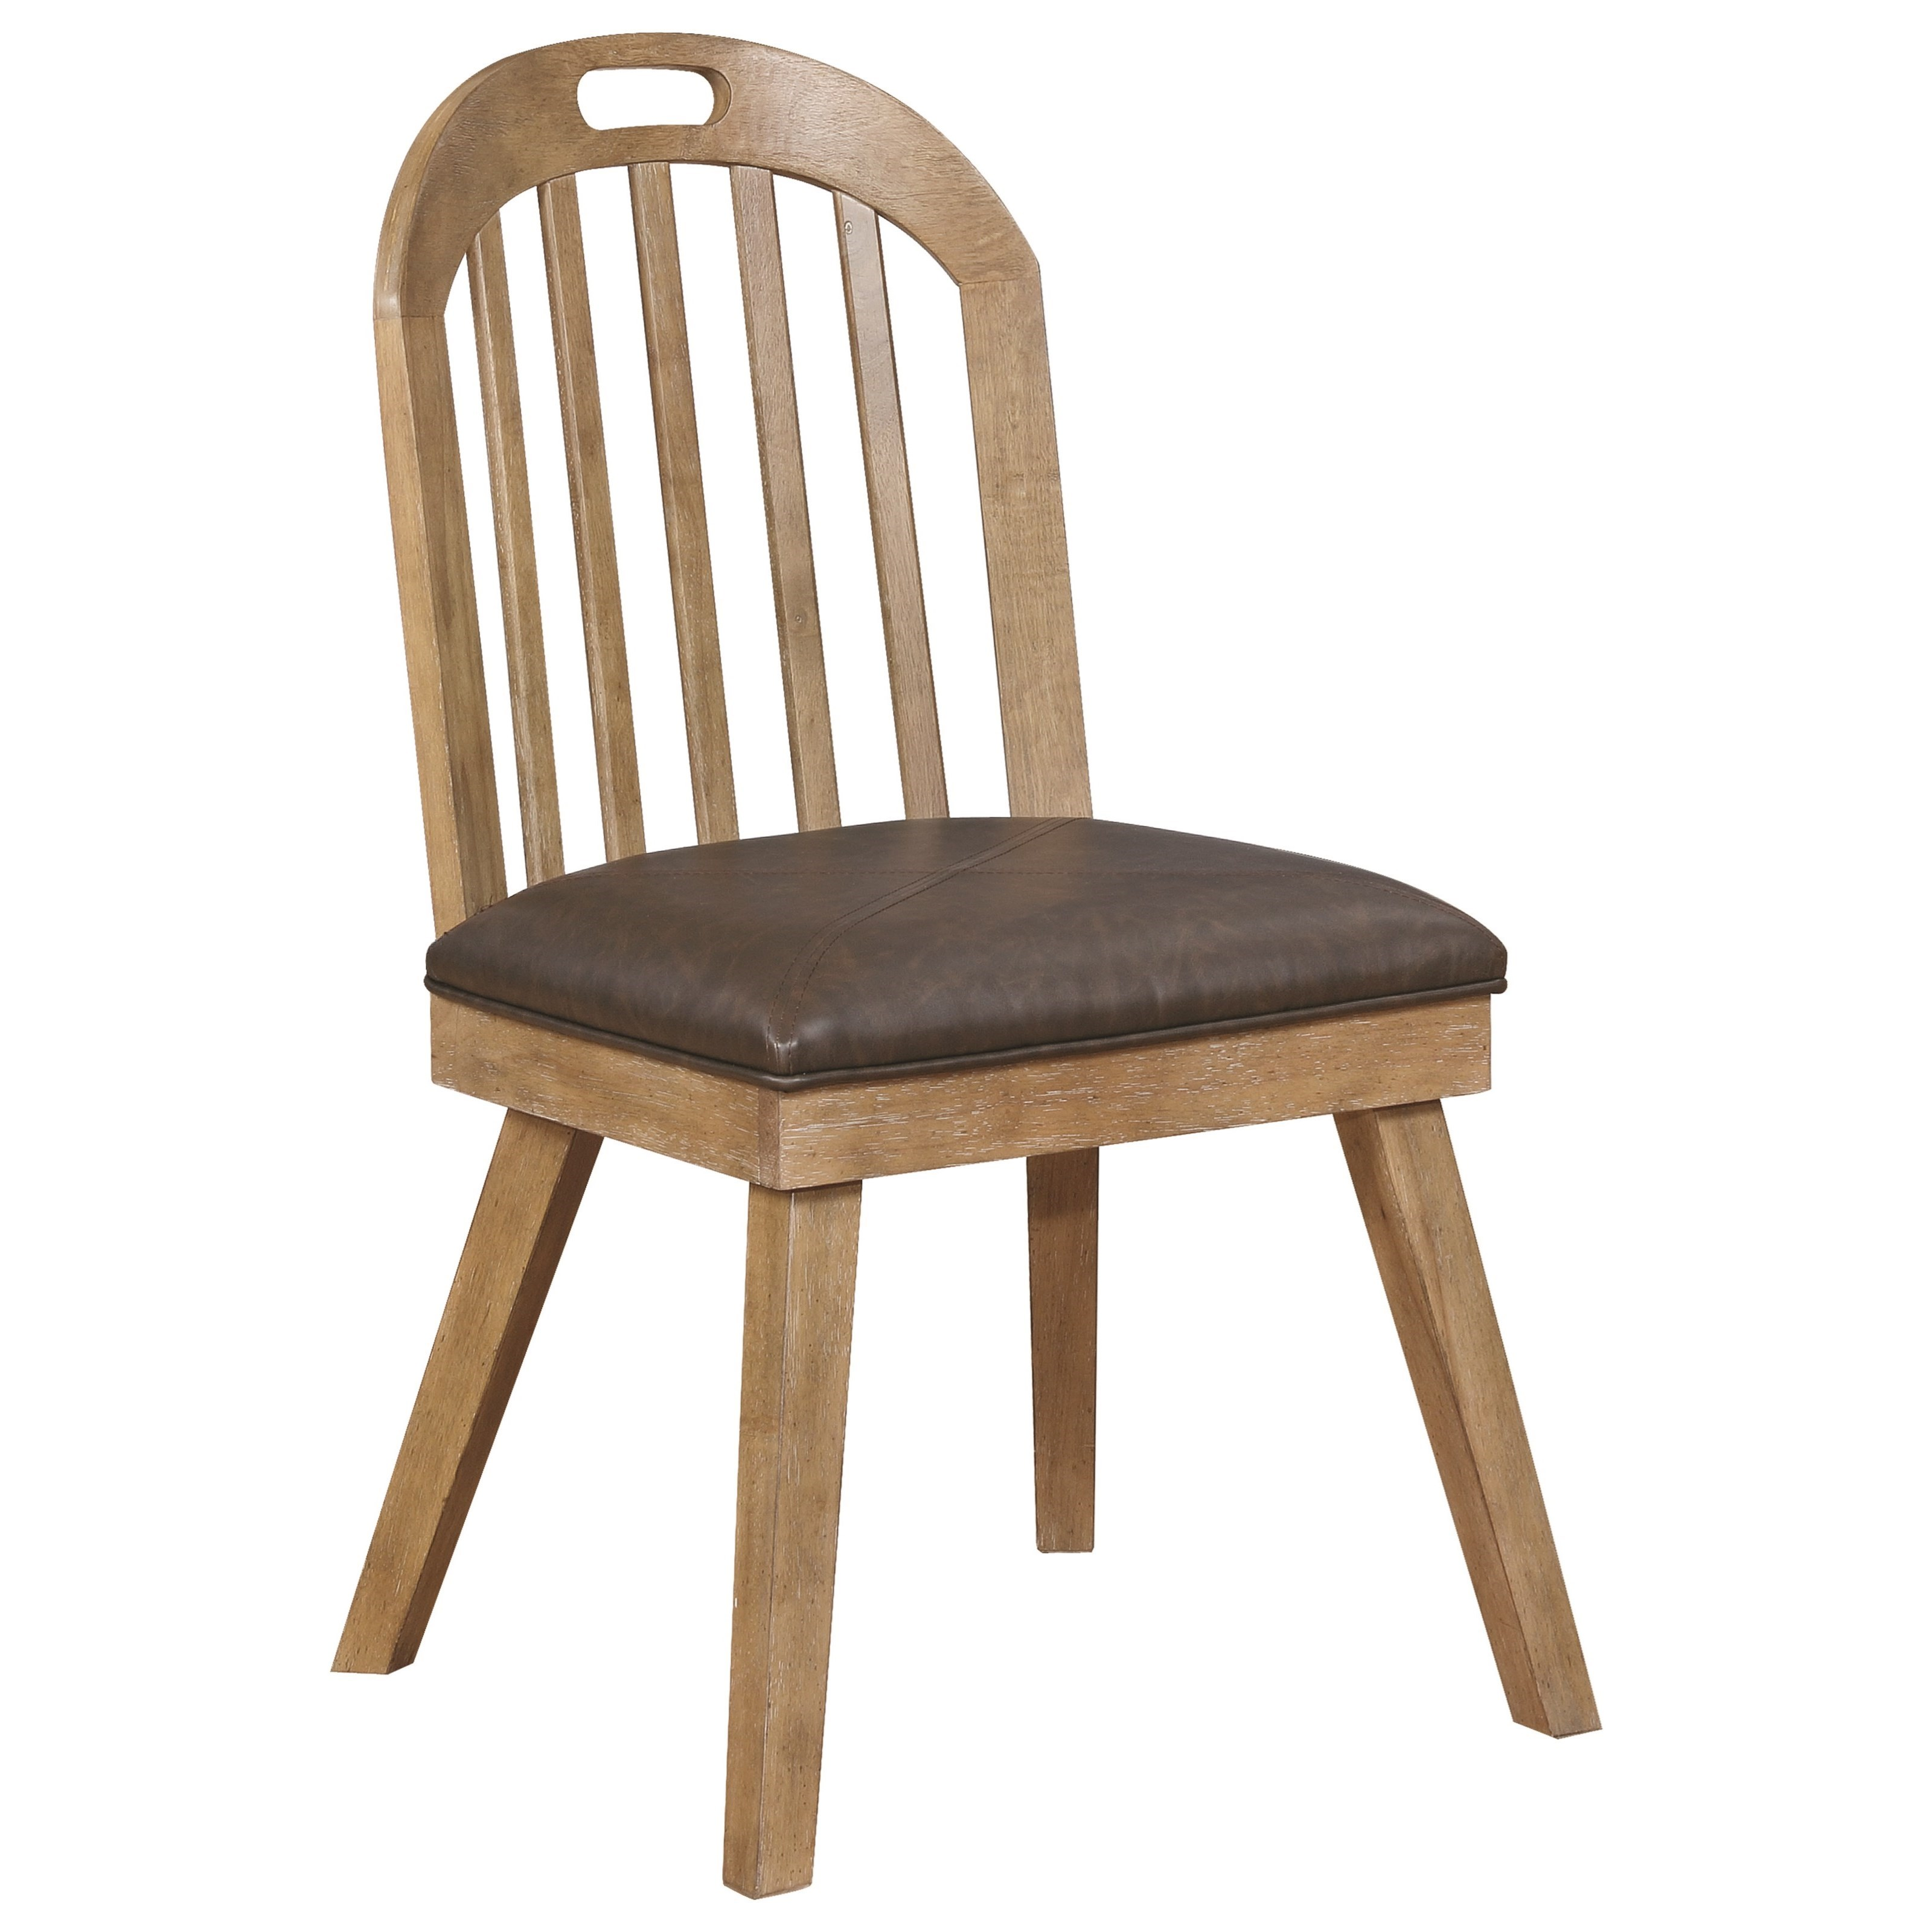 Scott Living Bishop Dining Chair - Item Number: 107762